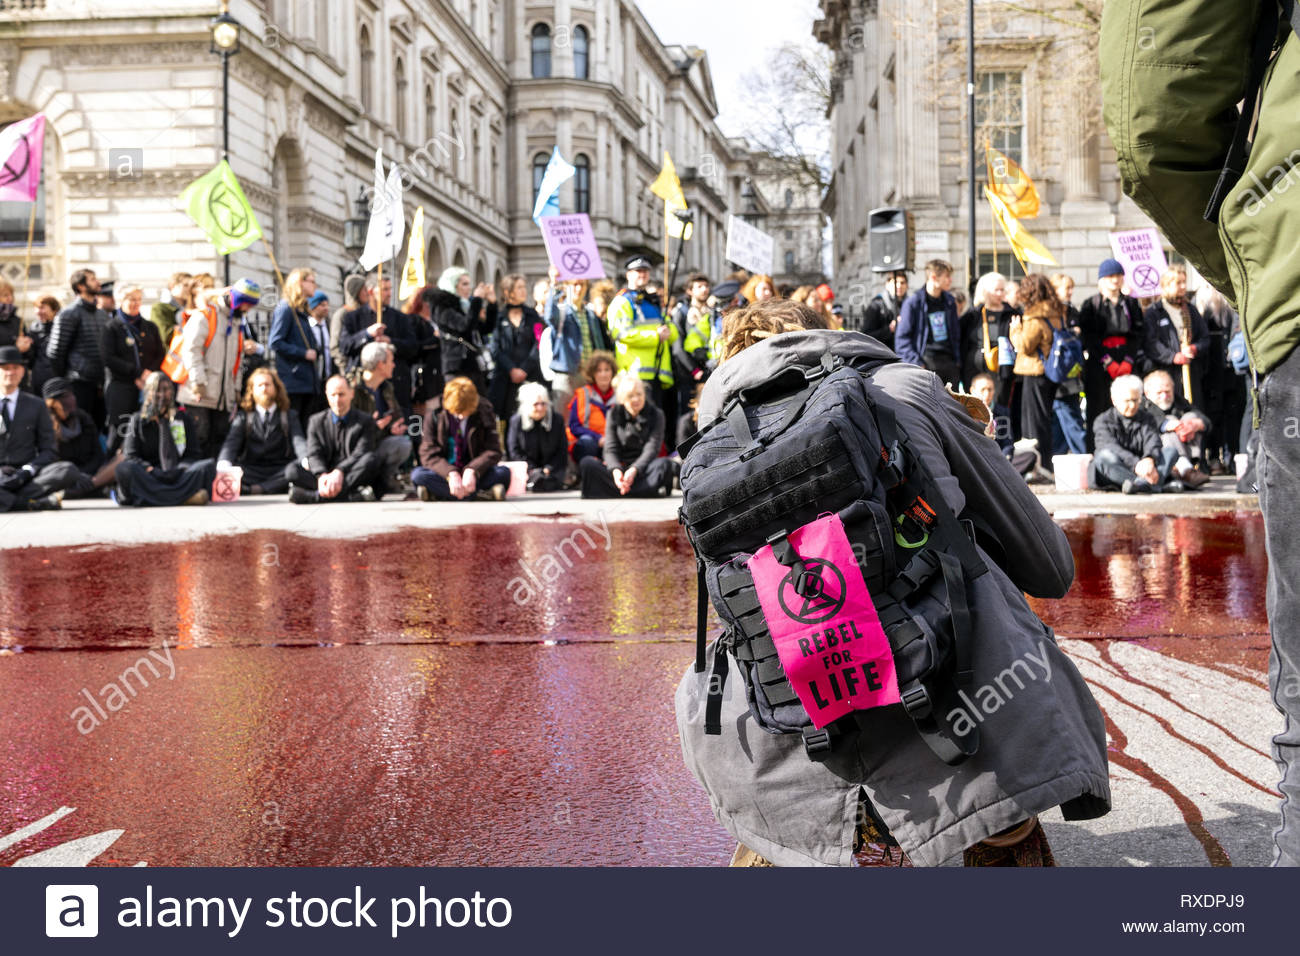 London, UK. 9th Mar, 2019. Extinction Rebellion Rally a demonstration at Downing Street. Protestor with 'Rebel for Life' banner. Credit: AndKa/Alamy Live News - Stock Image